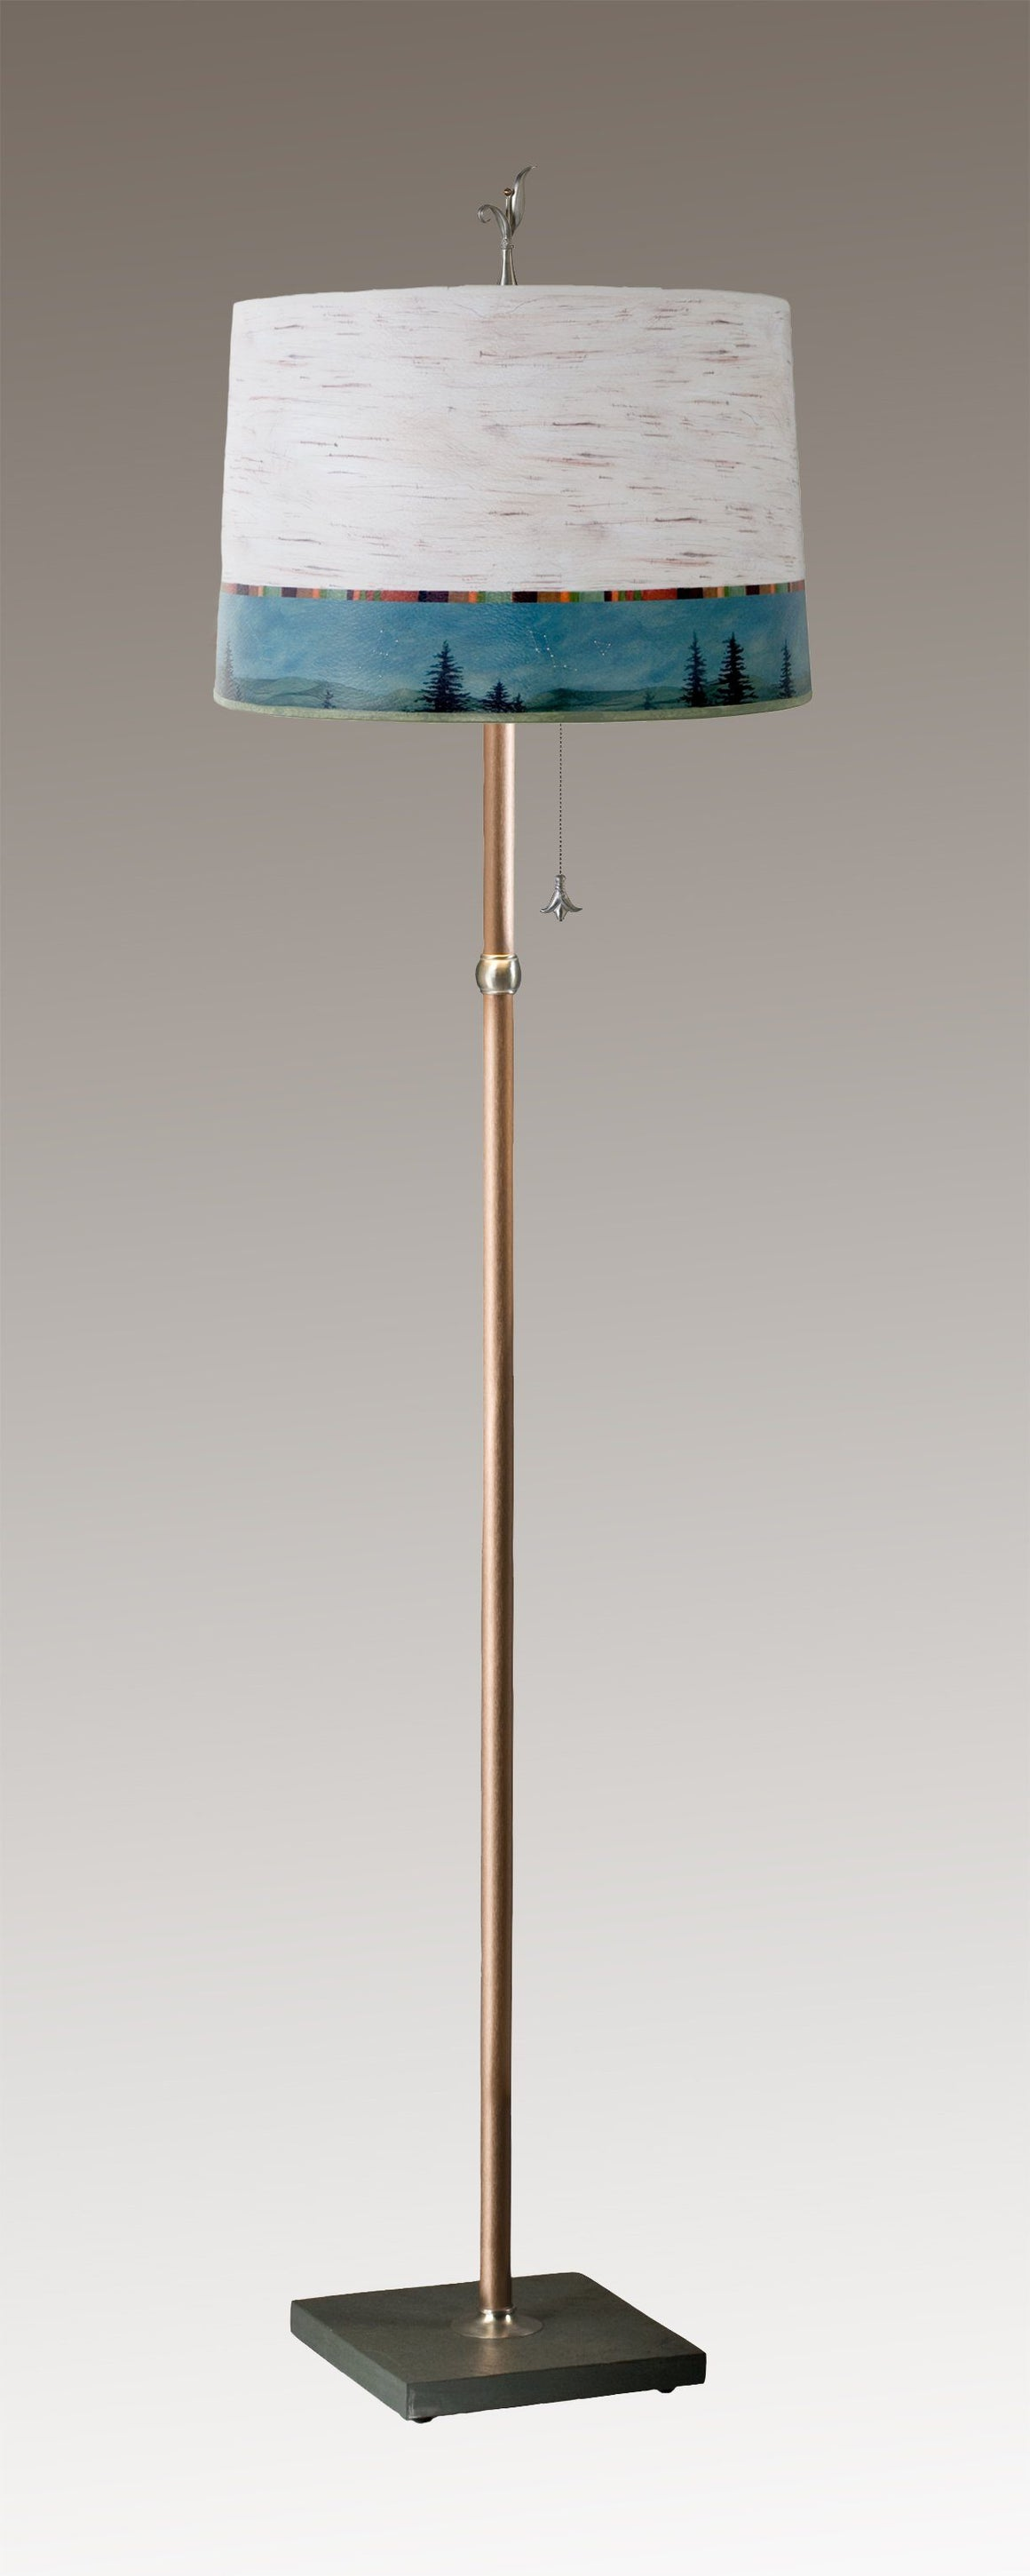 Copper Floor Lamp on Vermont Slate with Large Drum Shade in Birch Midnight